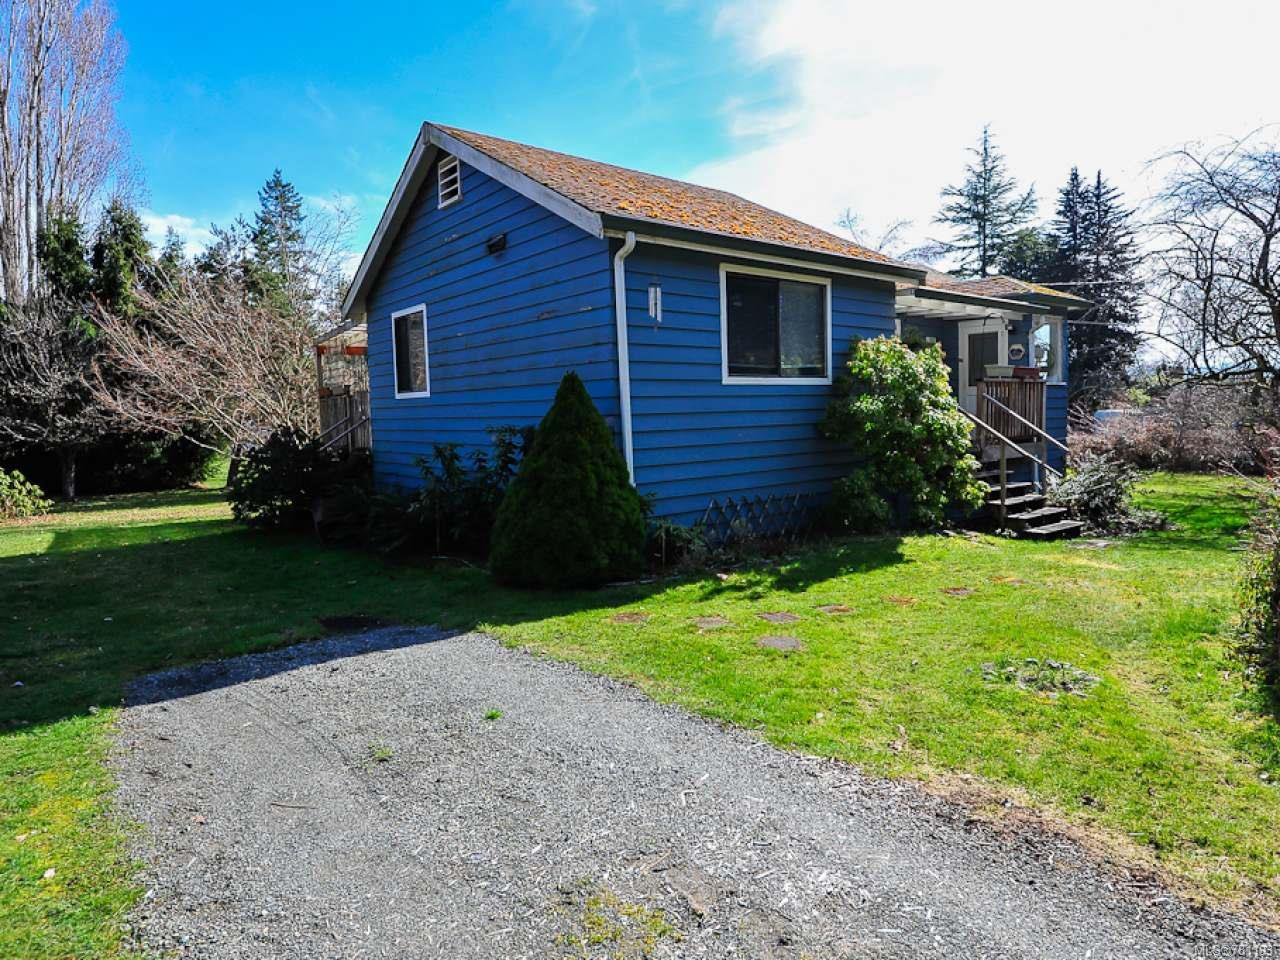 Main Photo: 108 CROTEAU ROAD in COMOX: CV Comox Peninsula House for sale (Comox Valley)  : MLS®# 781193